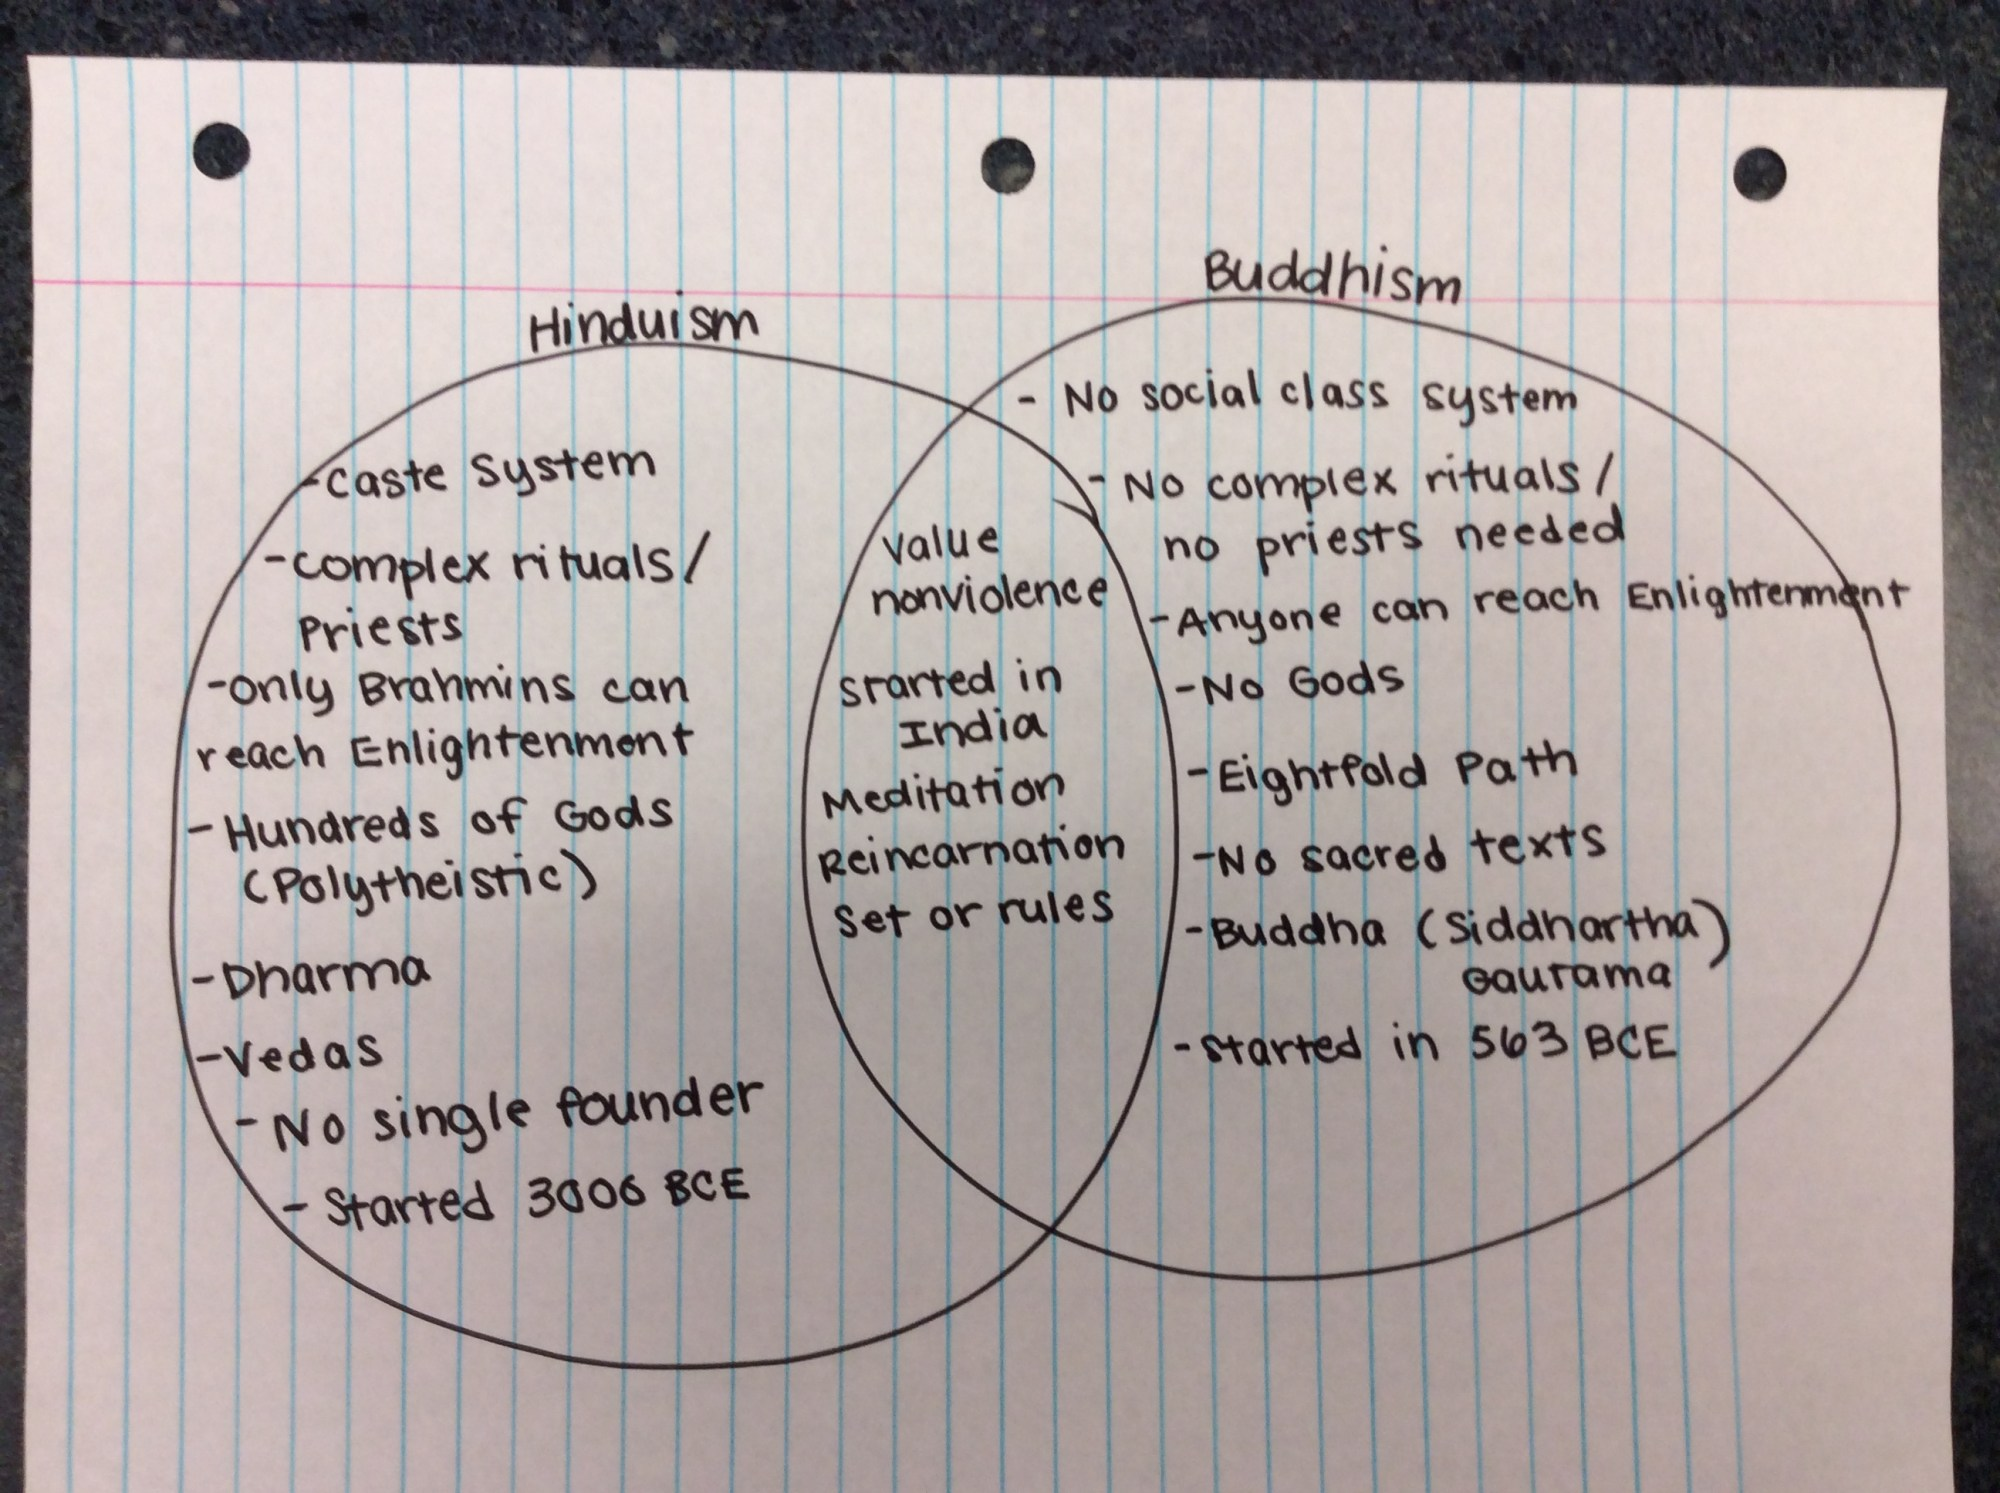 hight resolution of february 2014 ms stone s class page 2 buddhism and hinduism similarities hinduism and buddhism religion